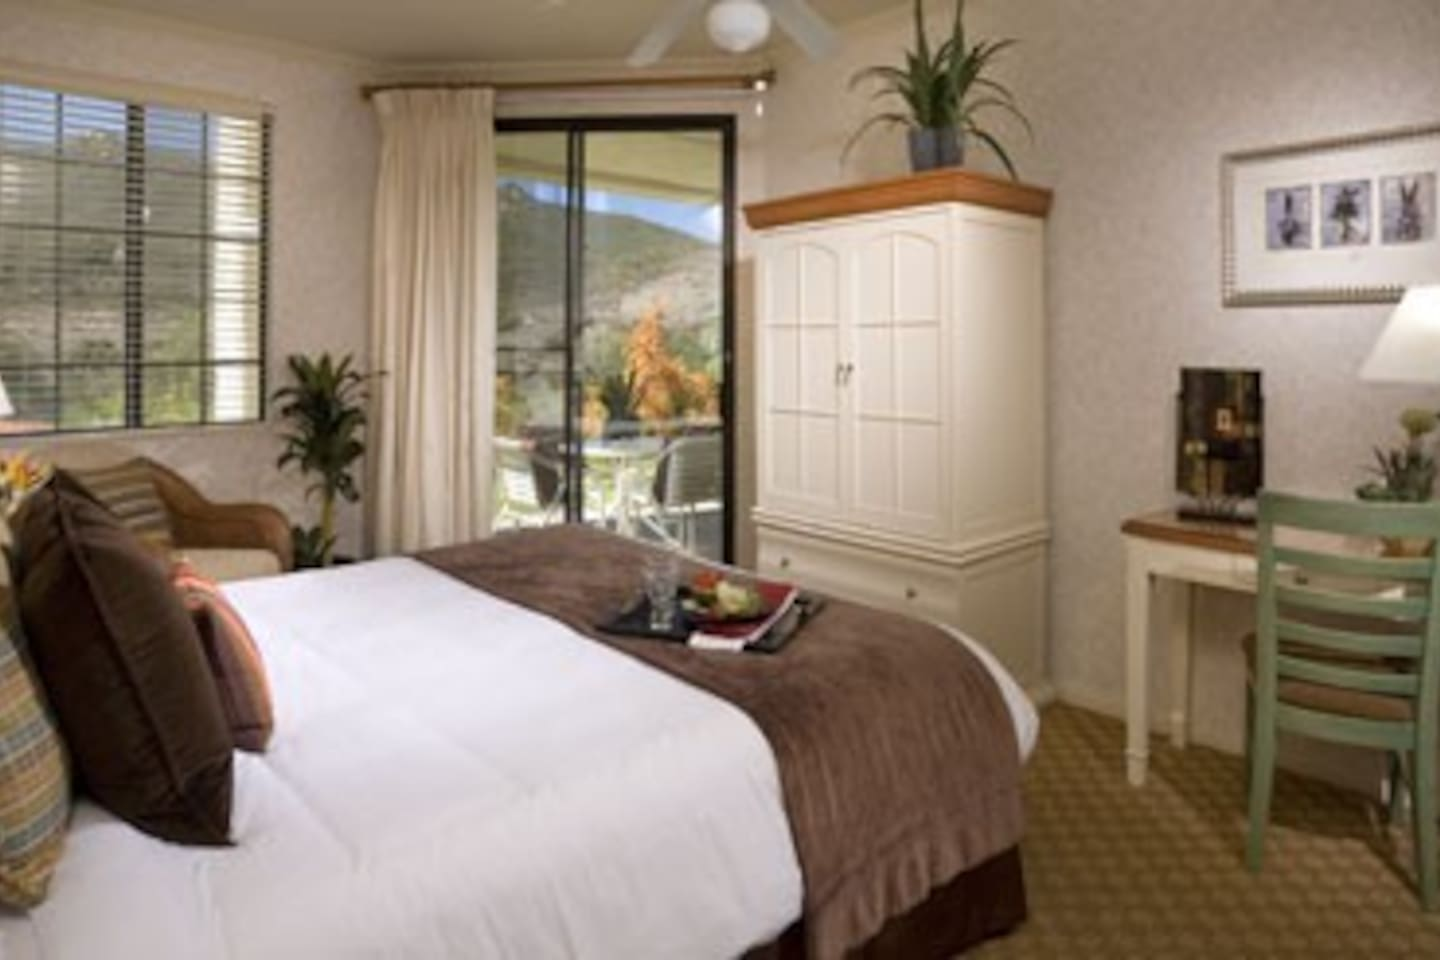 All master bedrooms have a king size bed.